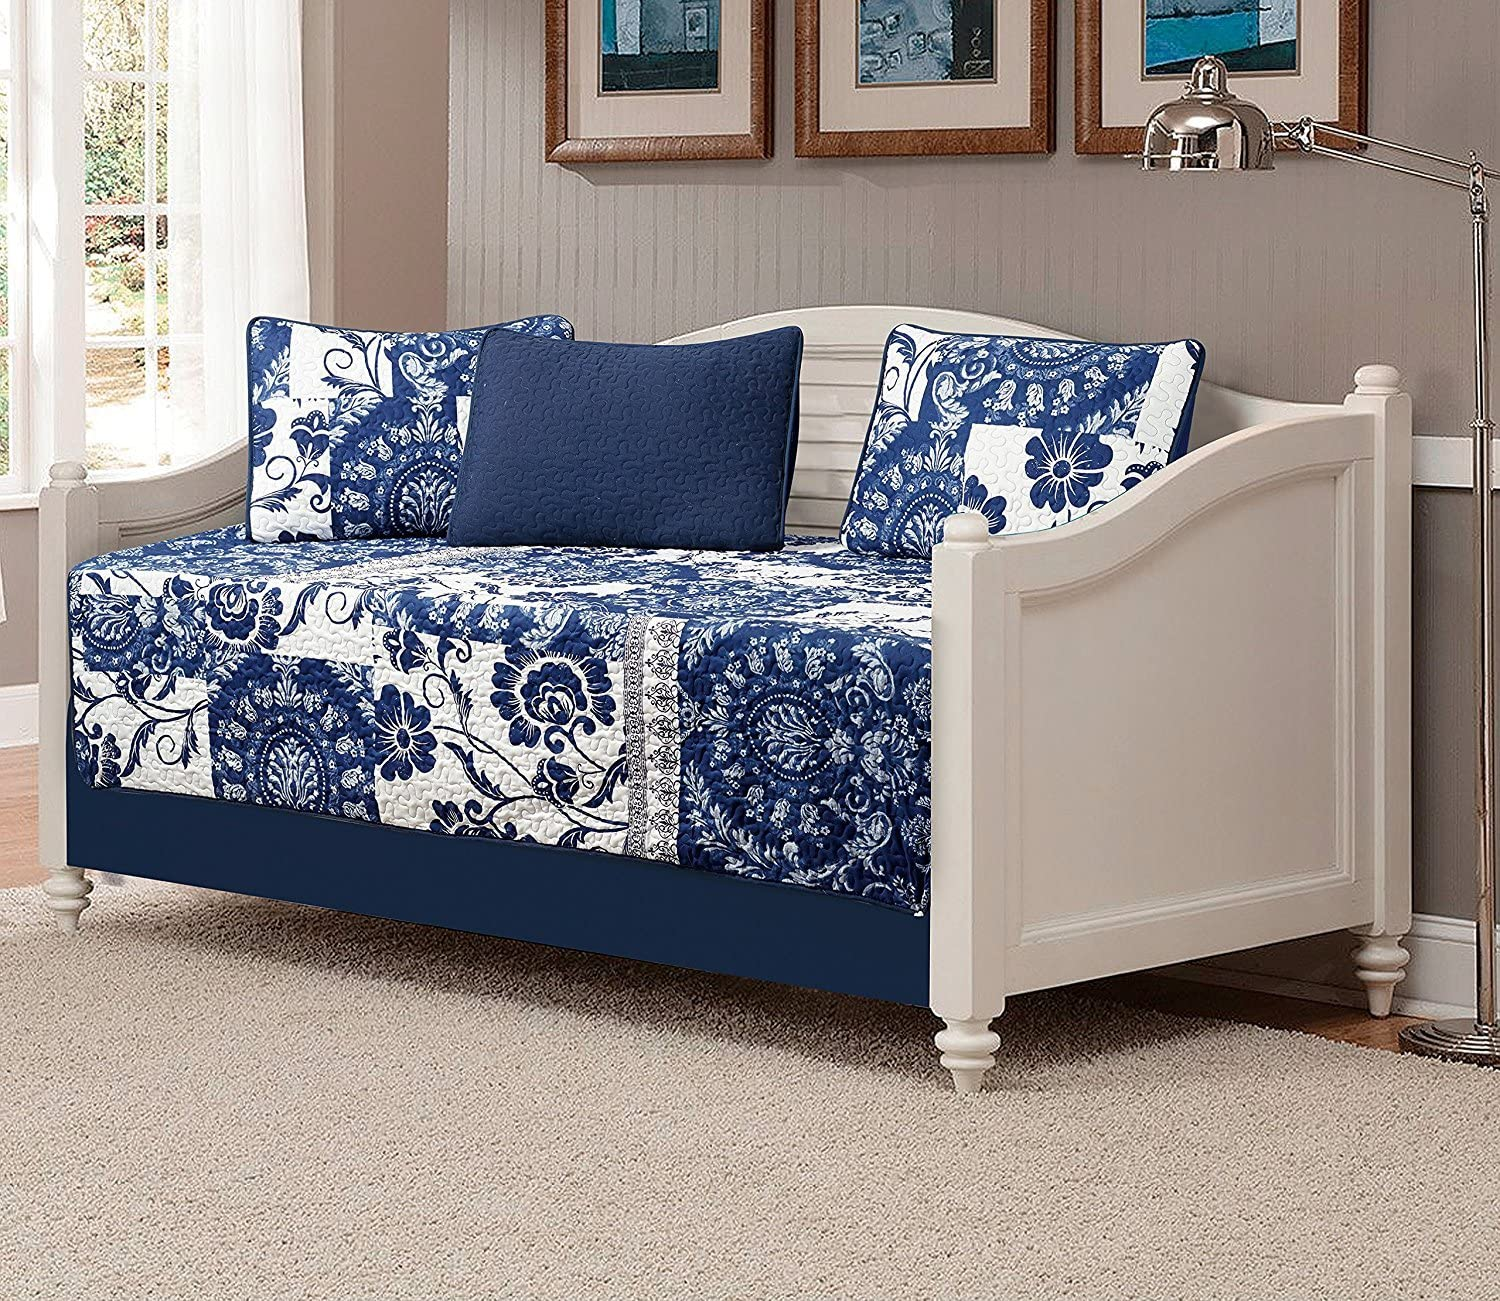 Fancy Collection 5pc DayBed Quilted Bedspread Coverlet Set Floral Navy Blue White New